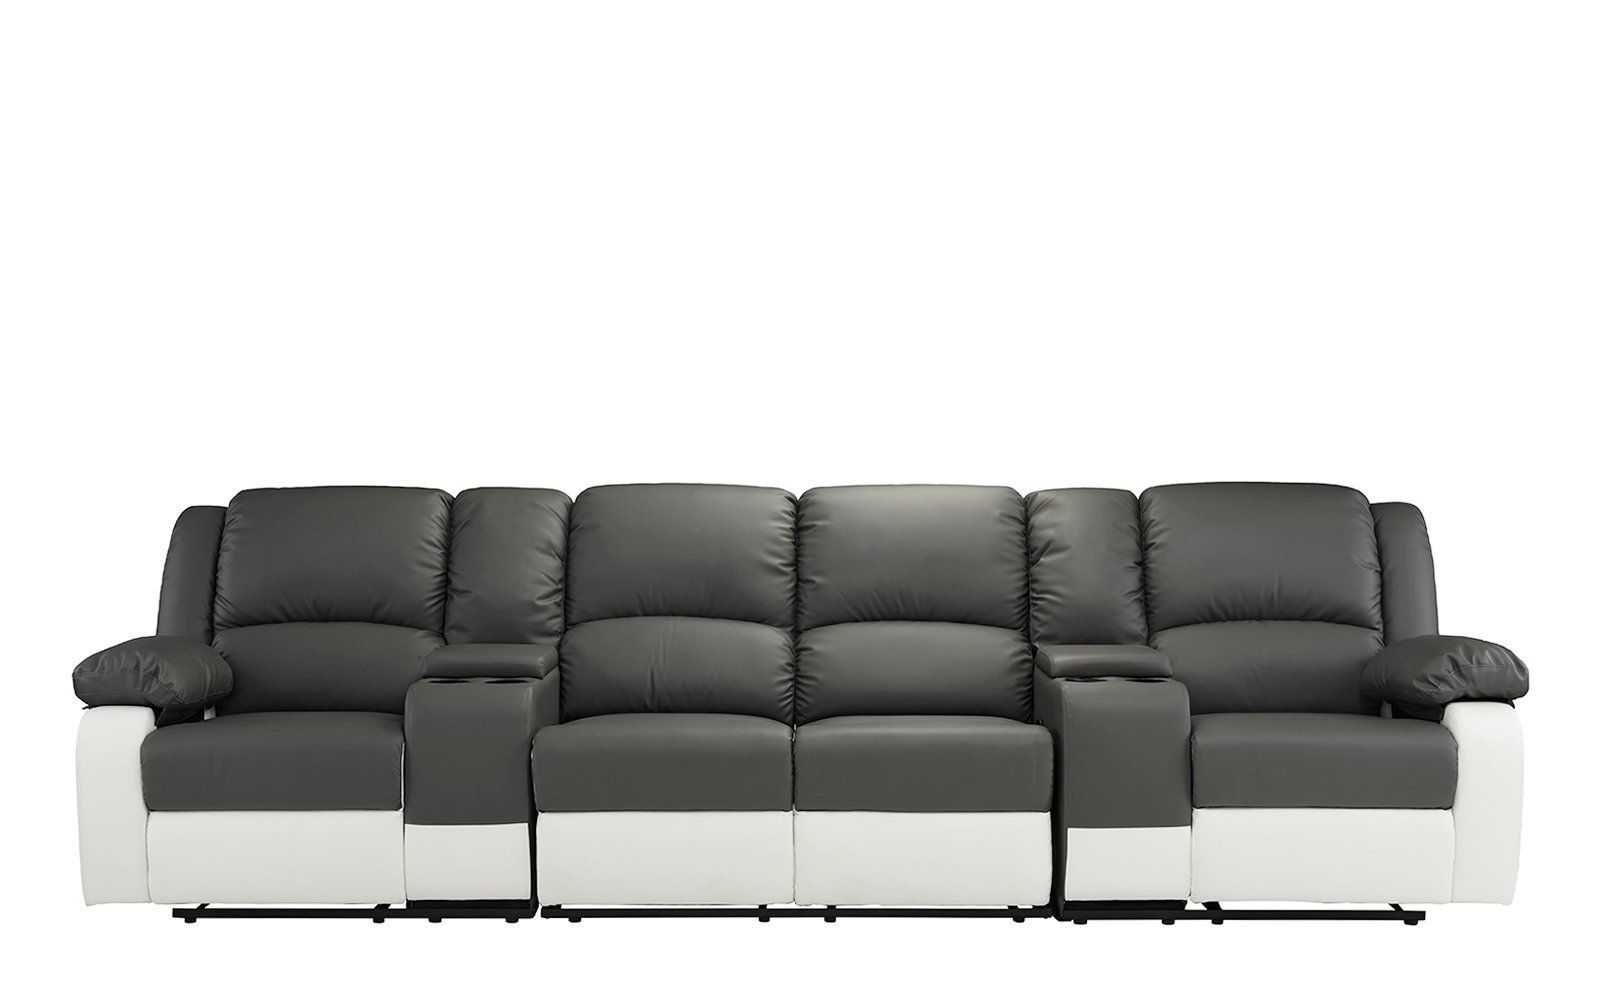 High Quality 4 Seat Large Classic Recliner Sofa With Cup Holders Home Theater Recliner  Couch Grey / White